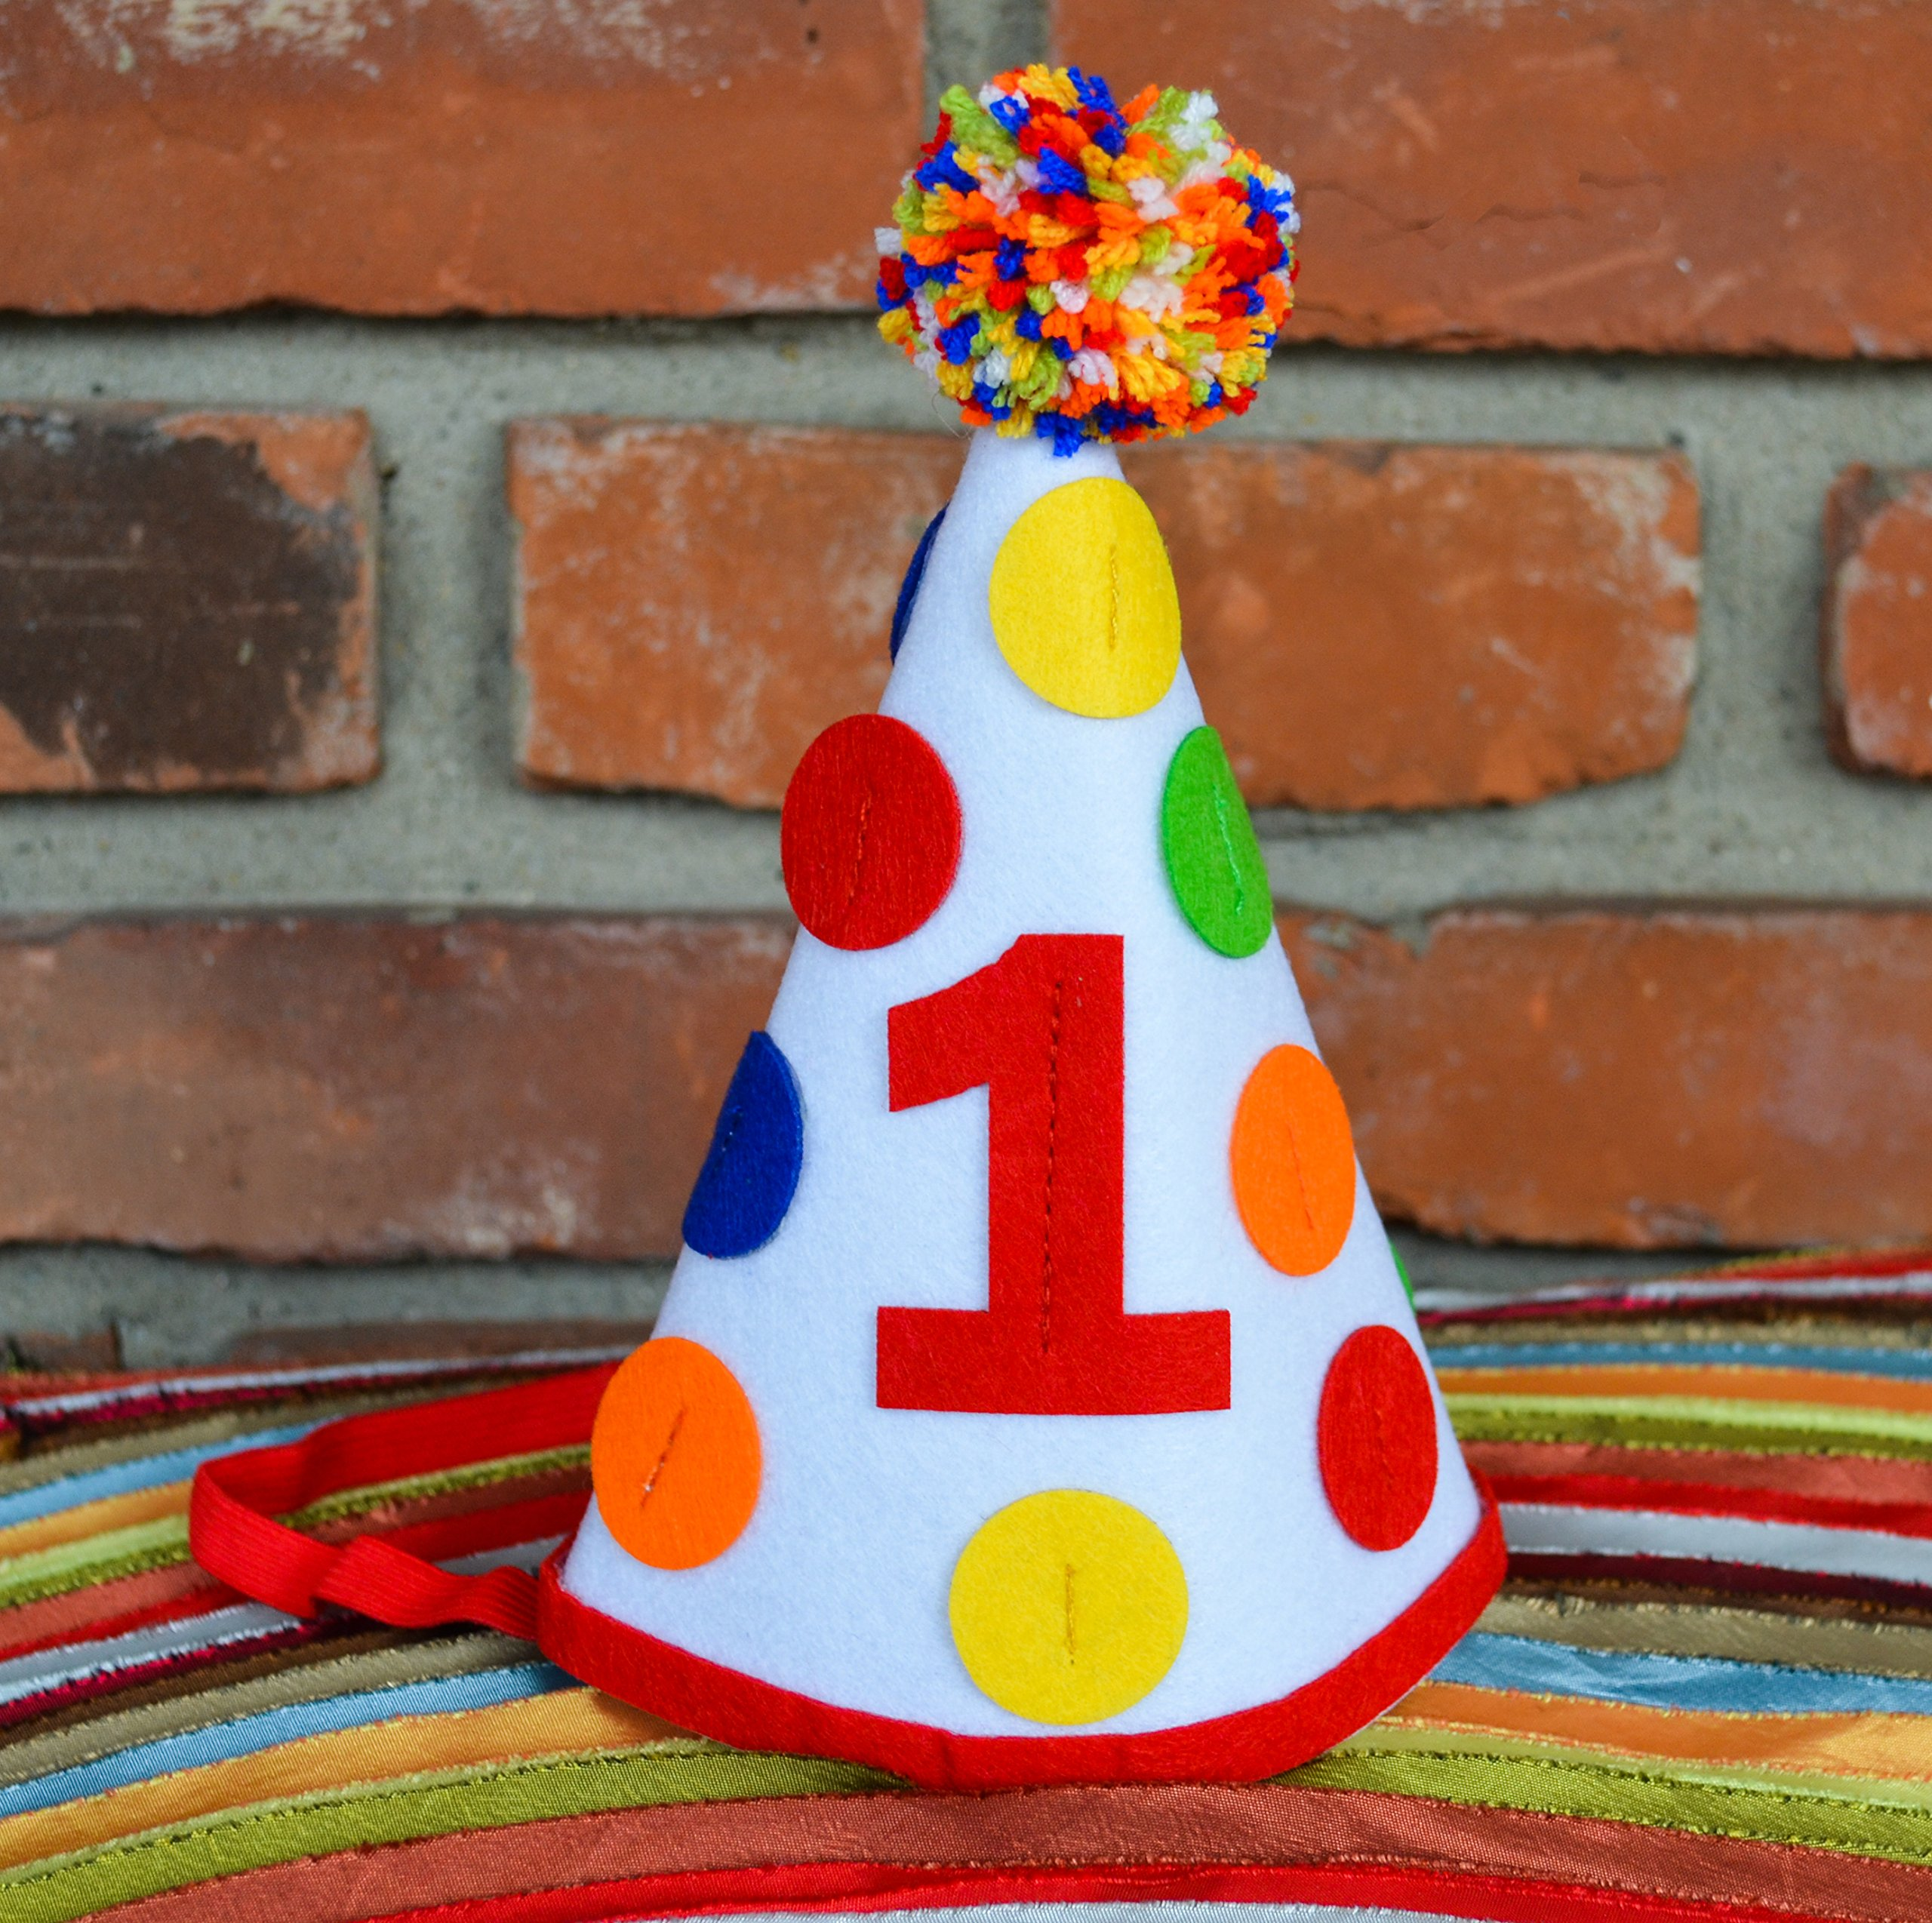 1st First Birthday Baby Boy Colorful Pom Pom Party Hat Girl Cake Smash Party Decorations by Birdy Boutique (Image #4)